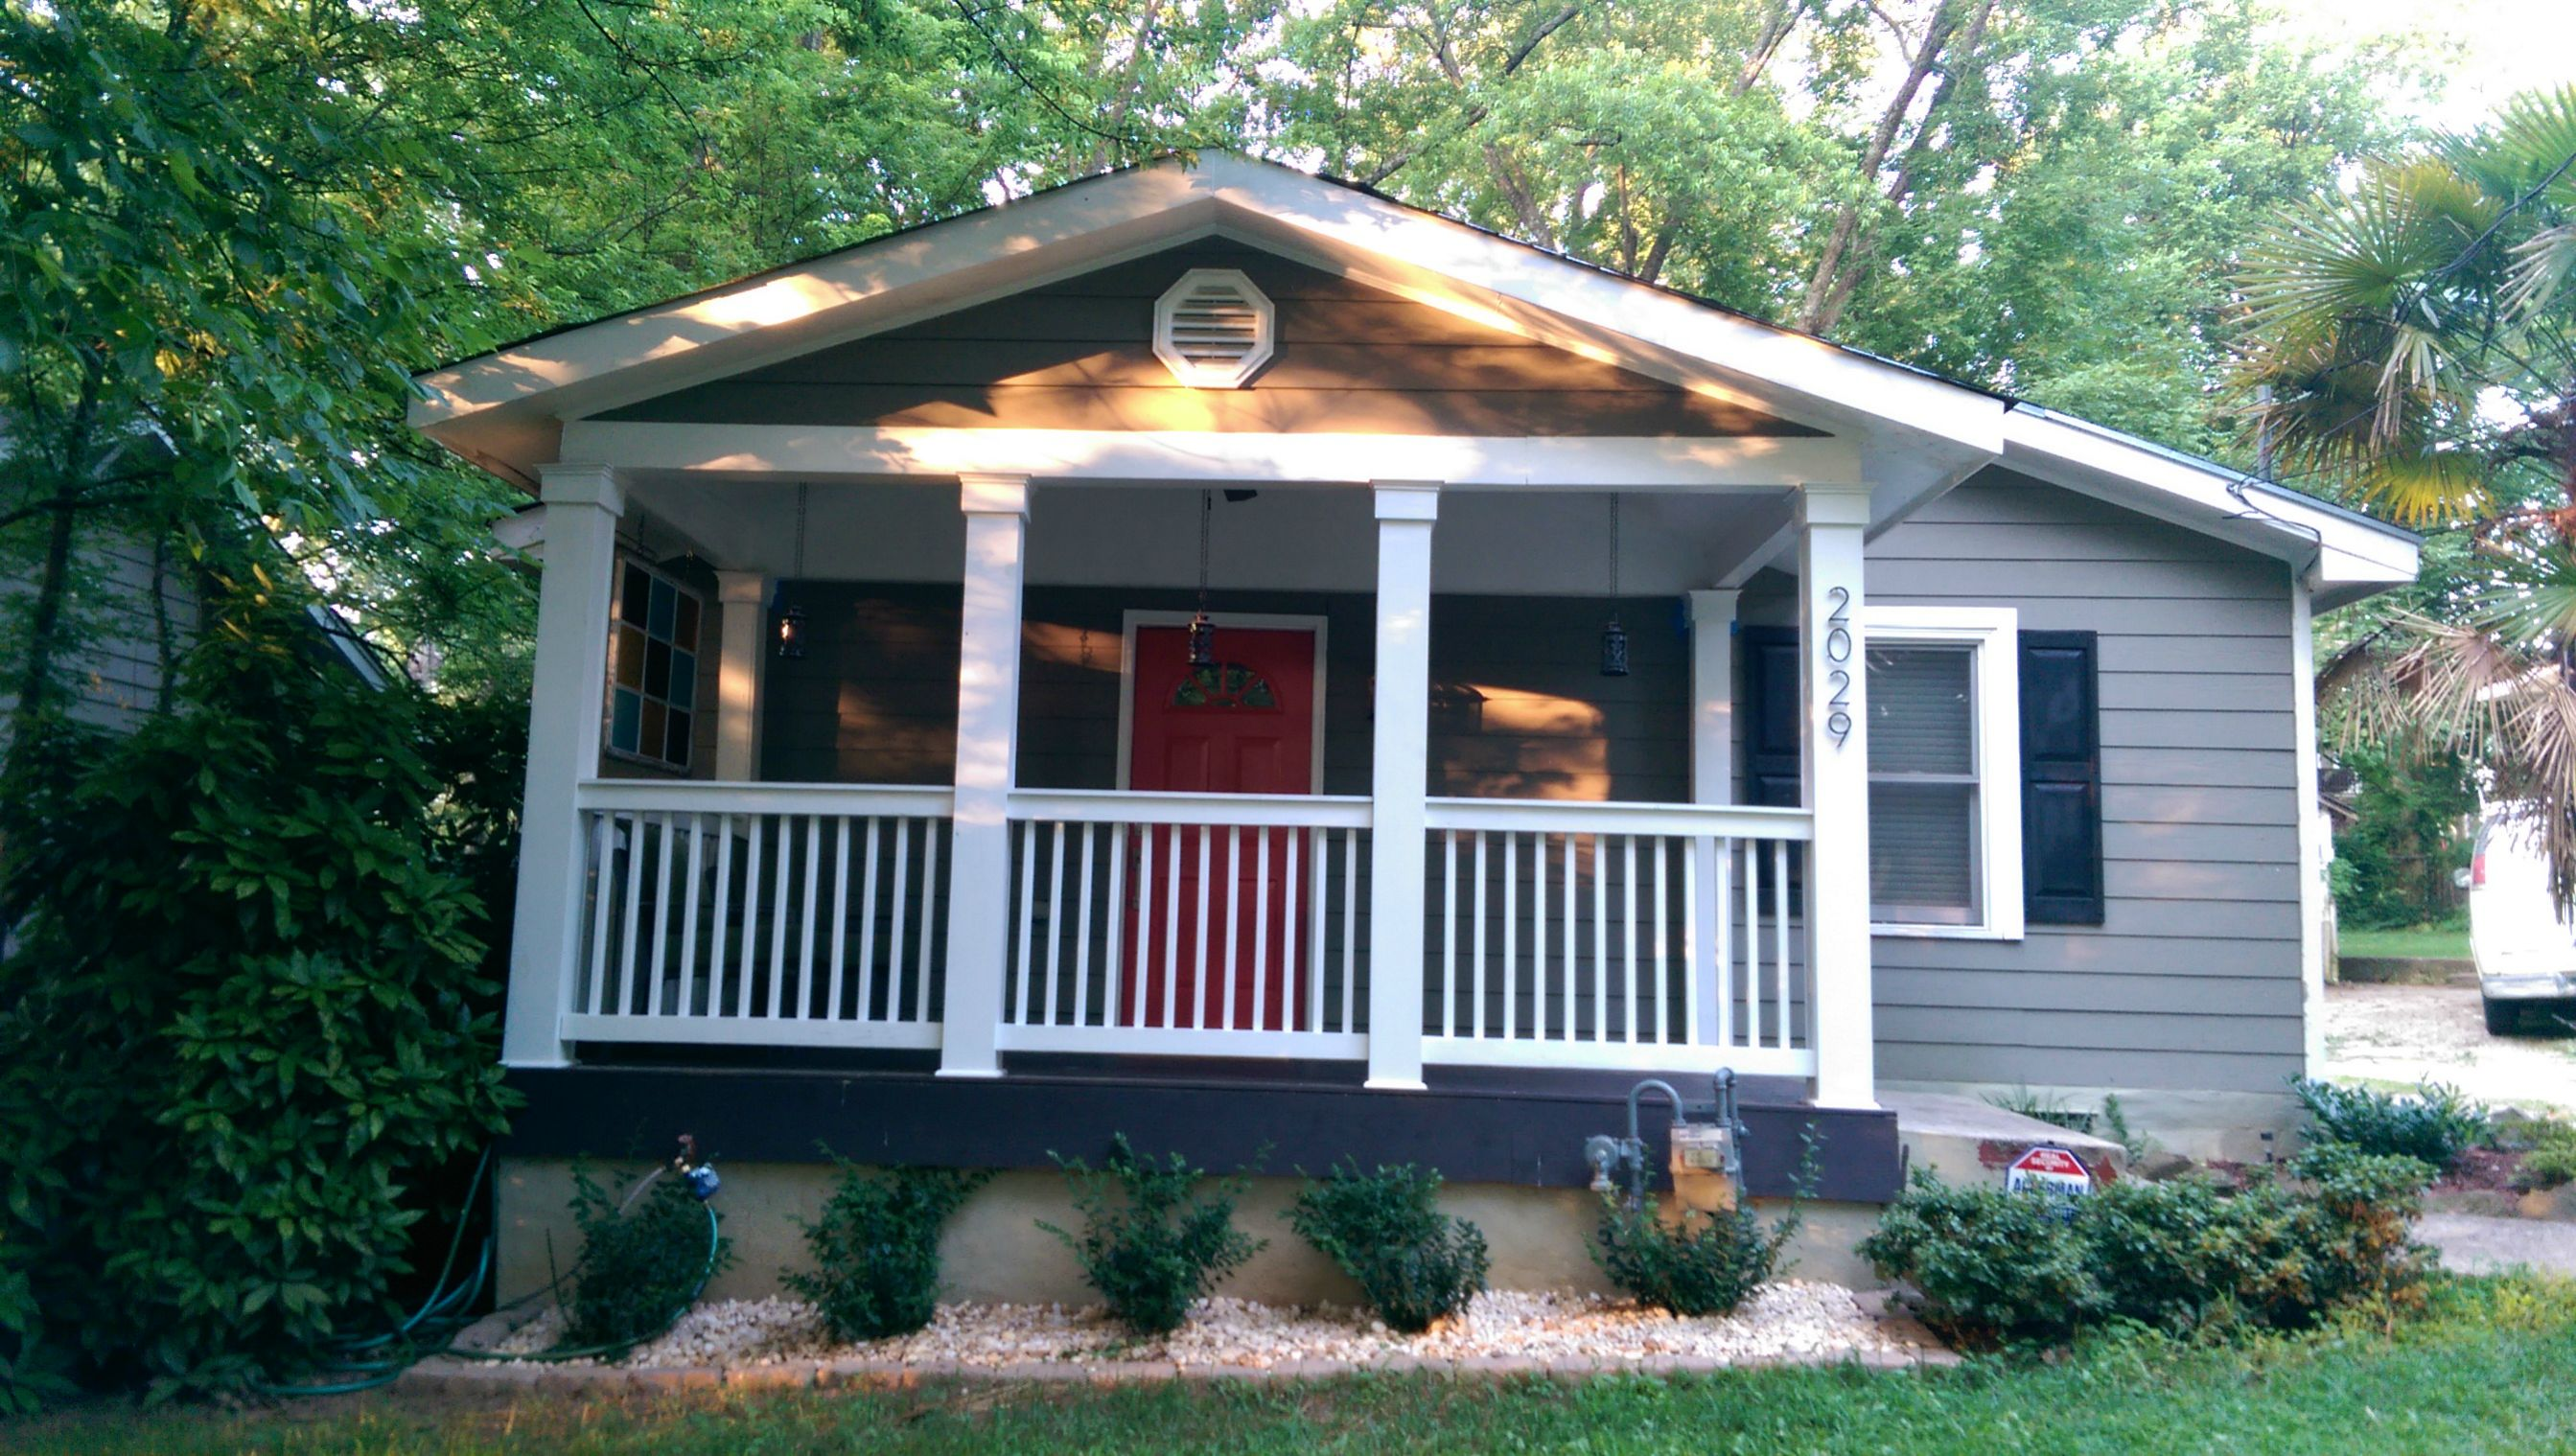 Affordable Front Porch Makeover - Front porch makeover ideas